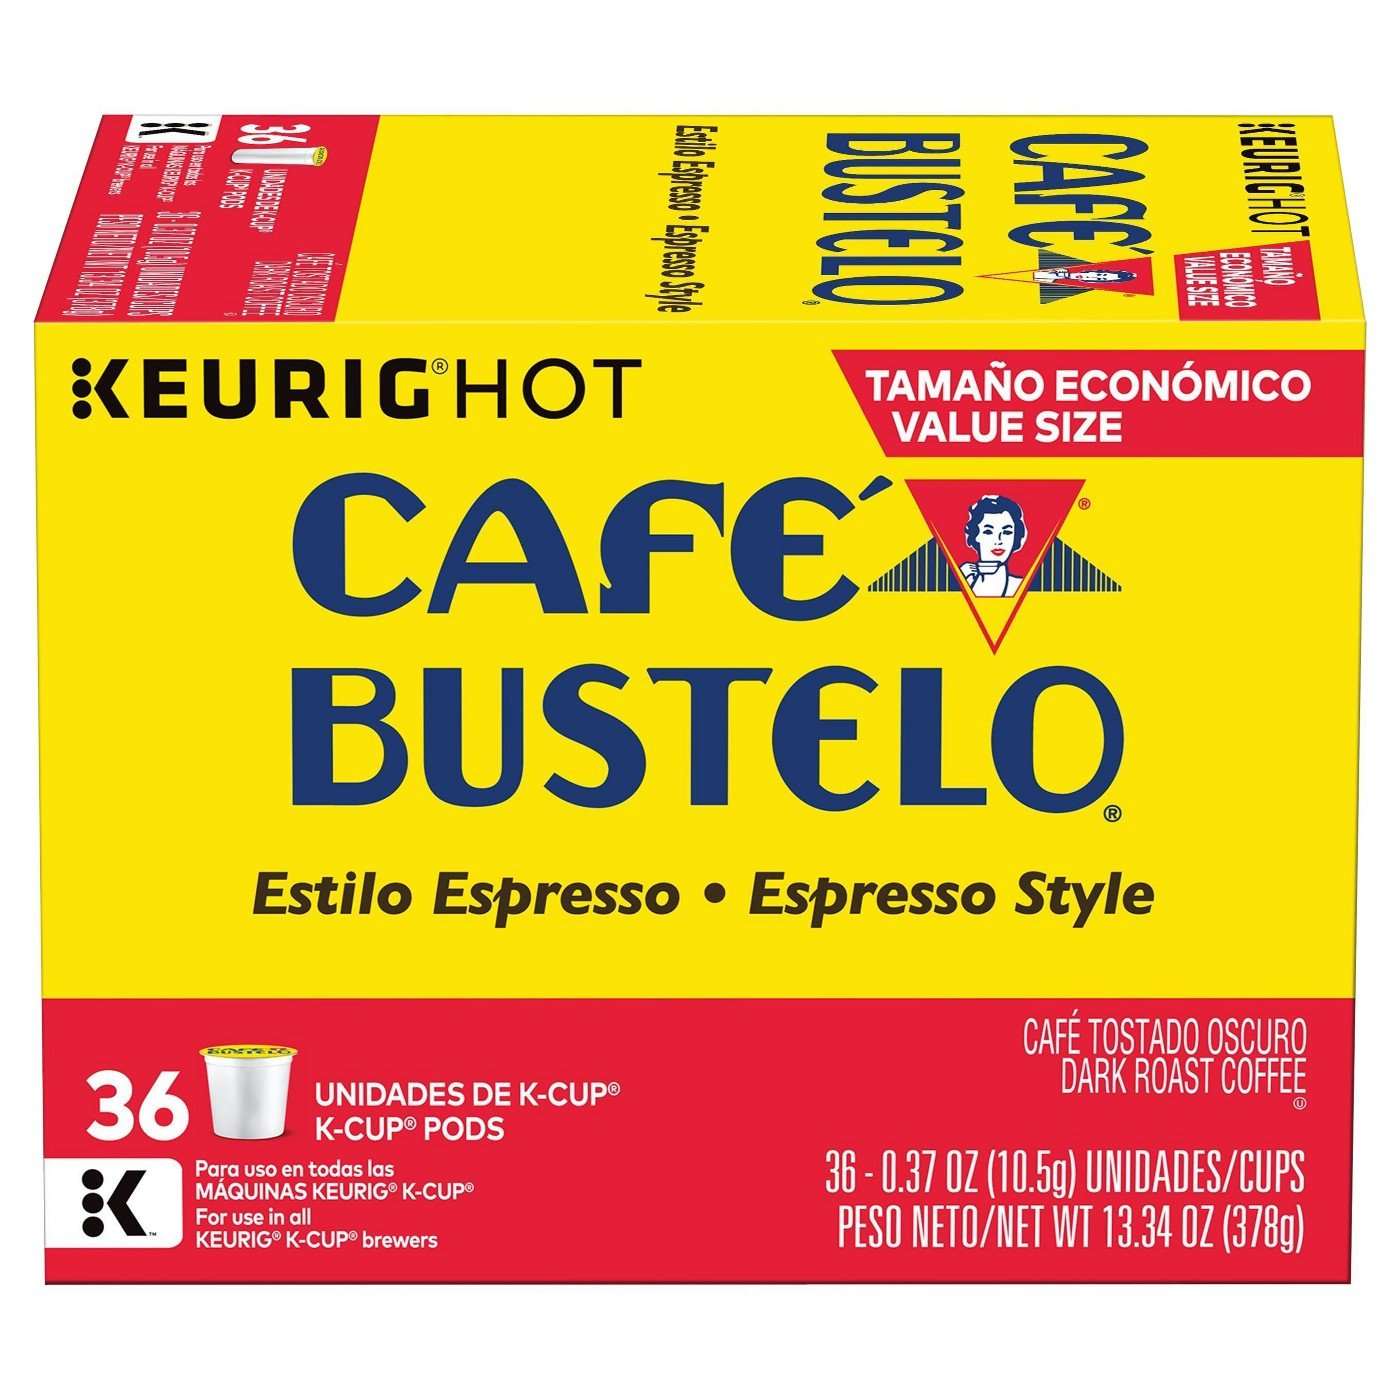 Amazon.com : Cafe Bustelo Espresso Coffee k-cups - 36 ct : Grocery & Gourmet Food